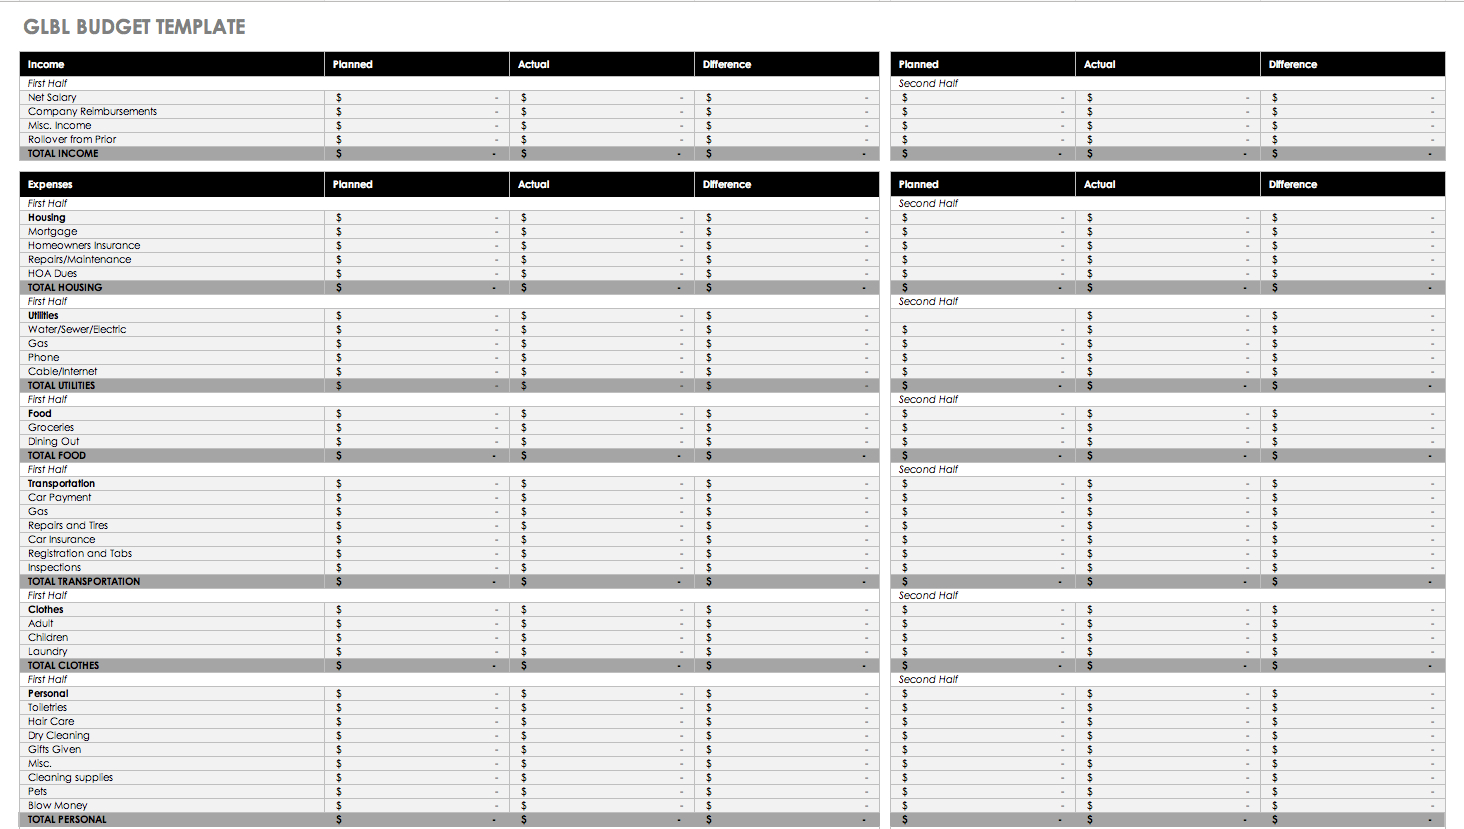 Free Budget Templates In Excel For Any Use Regarding Incomings And Outgoings Spreadsheet